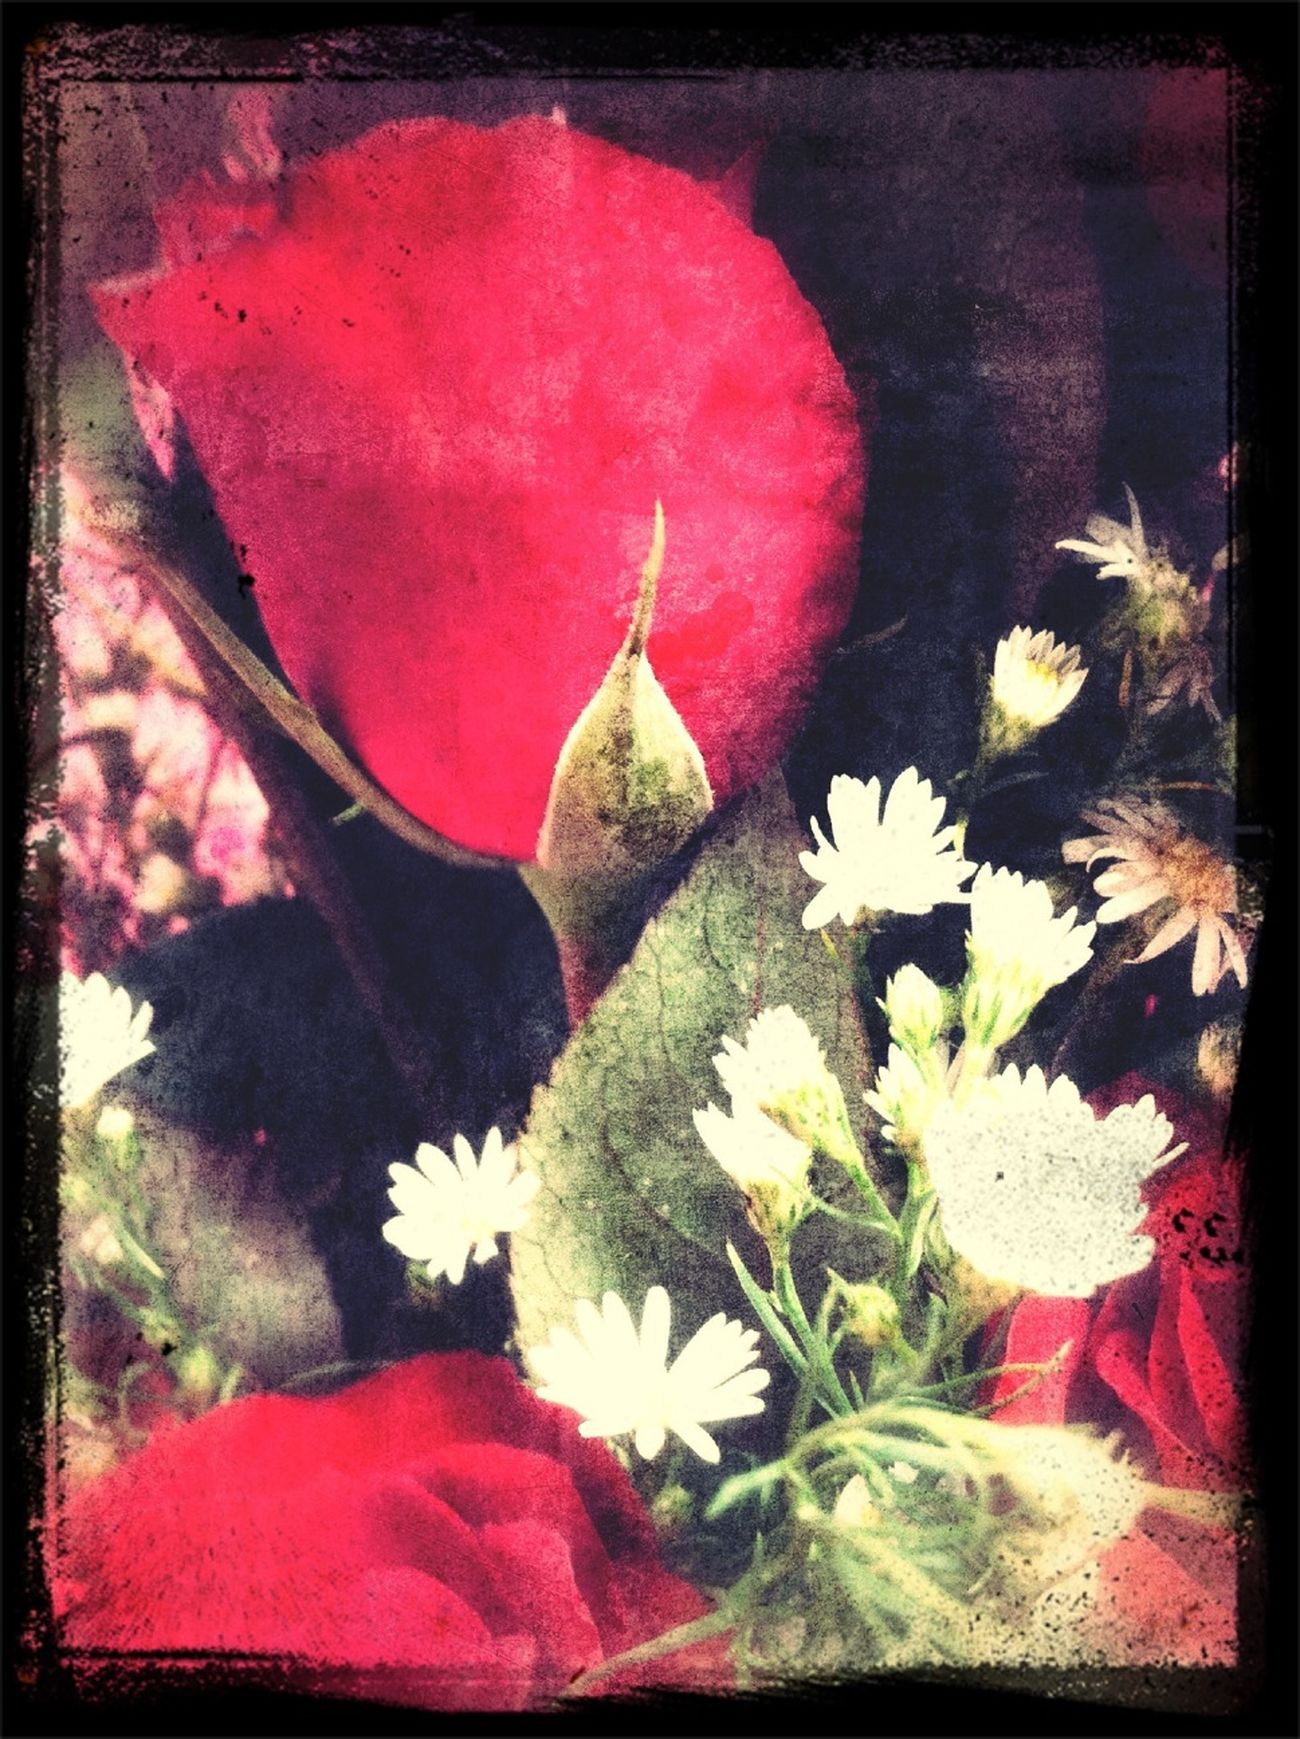 #roses #red #vintage #painting